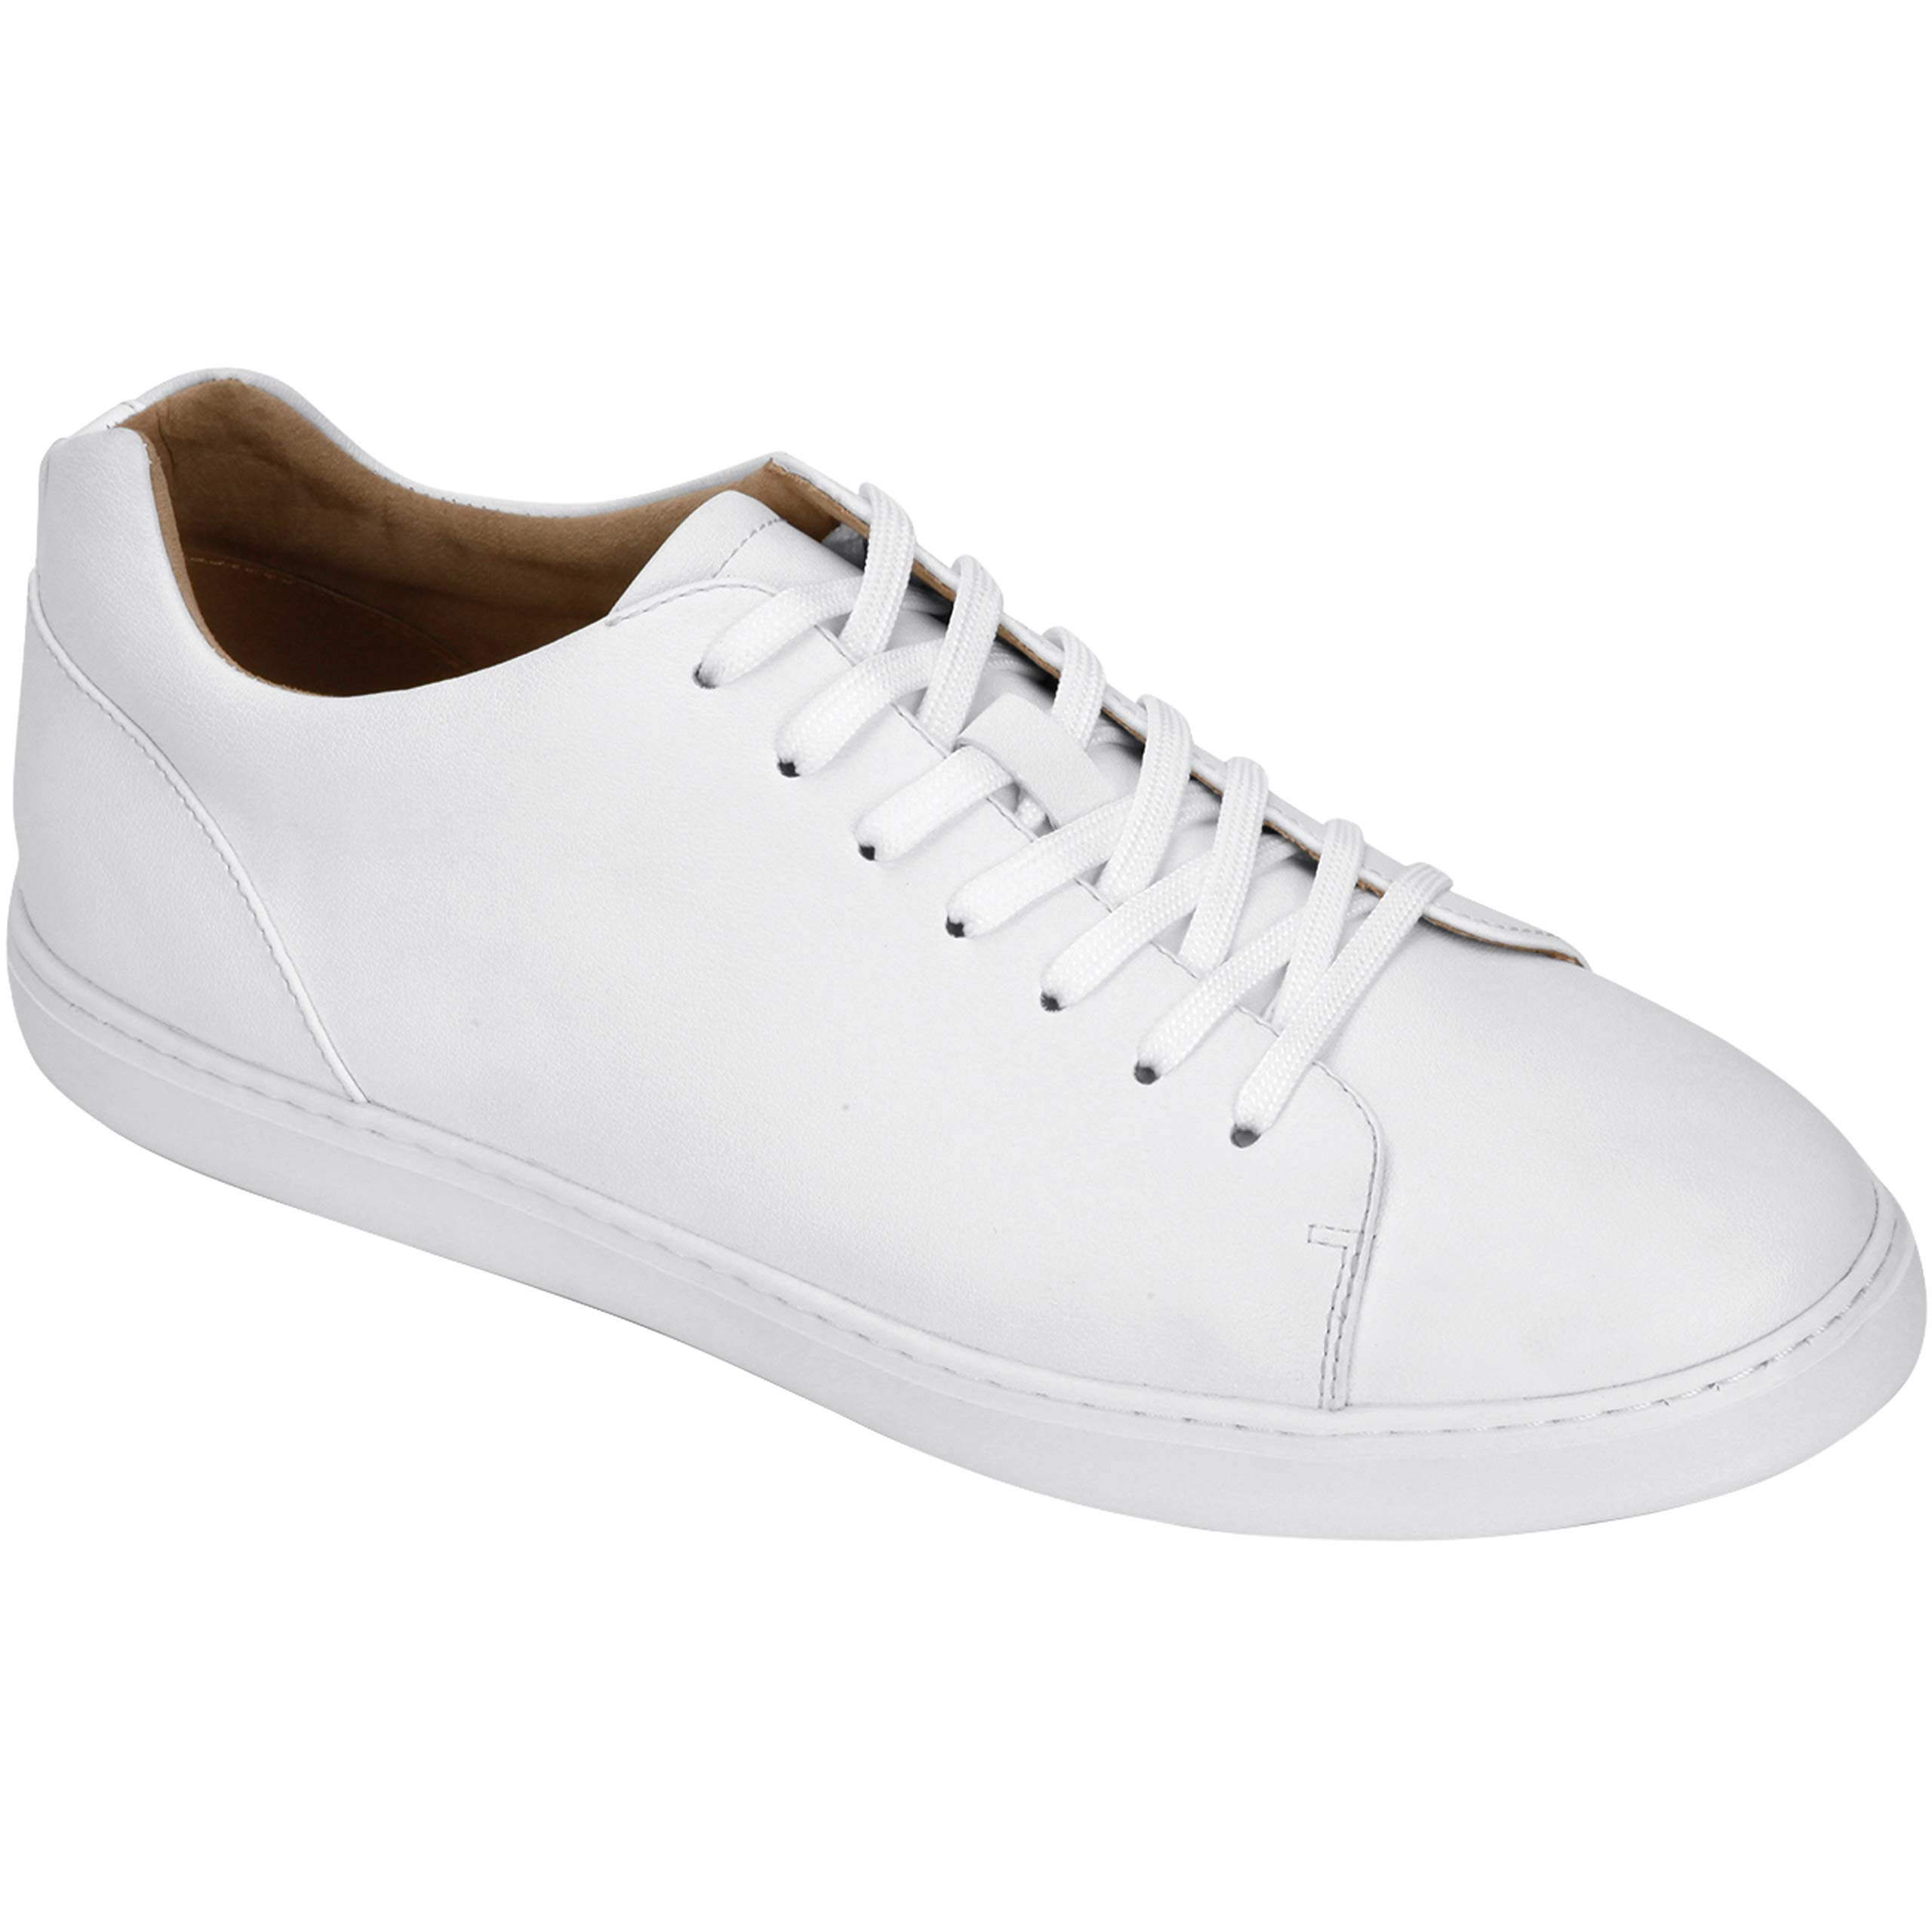 Kenneth Cole REACTION Mens Indy Sneaker E